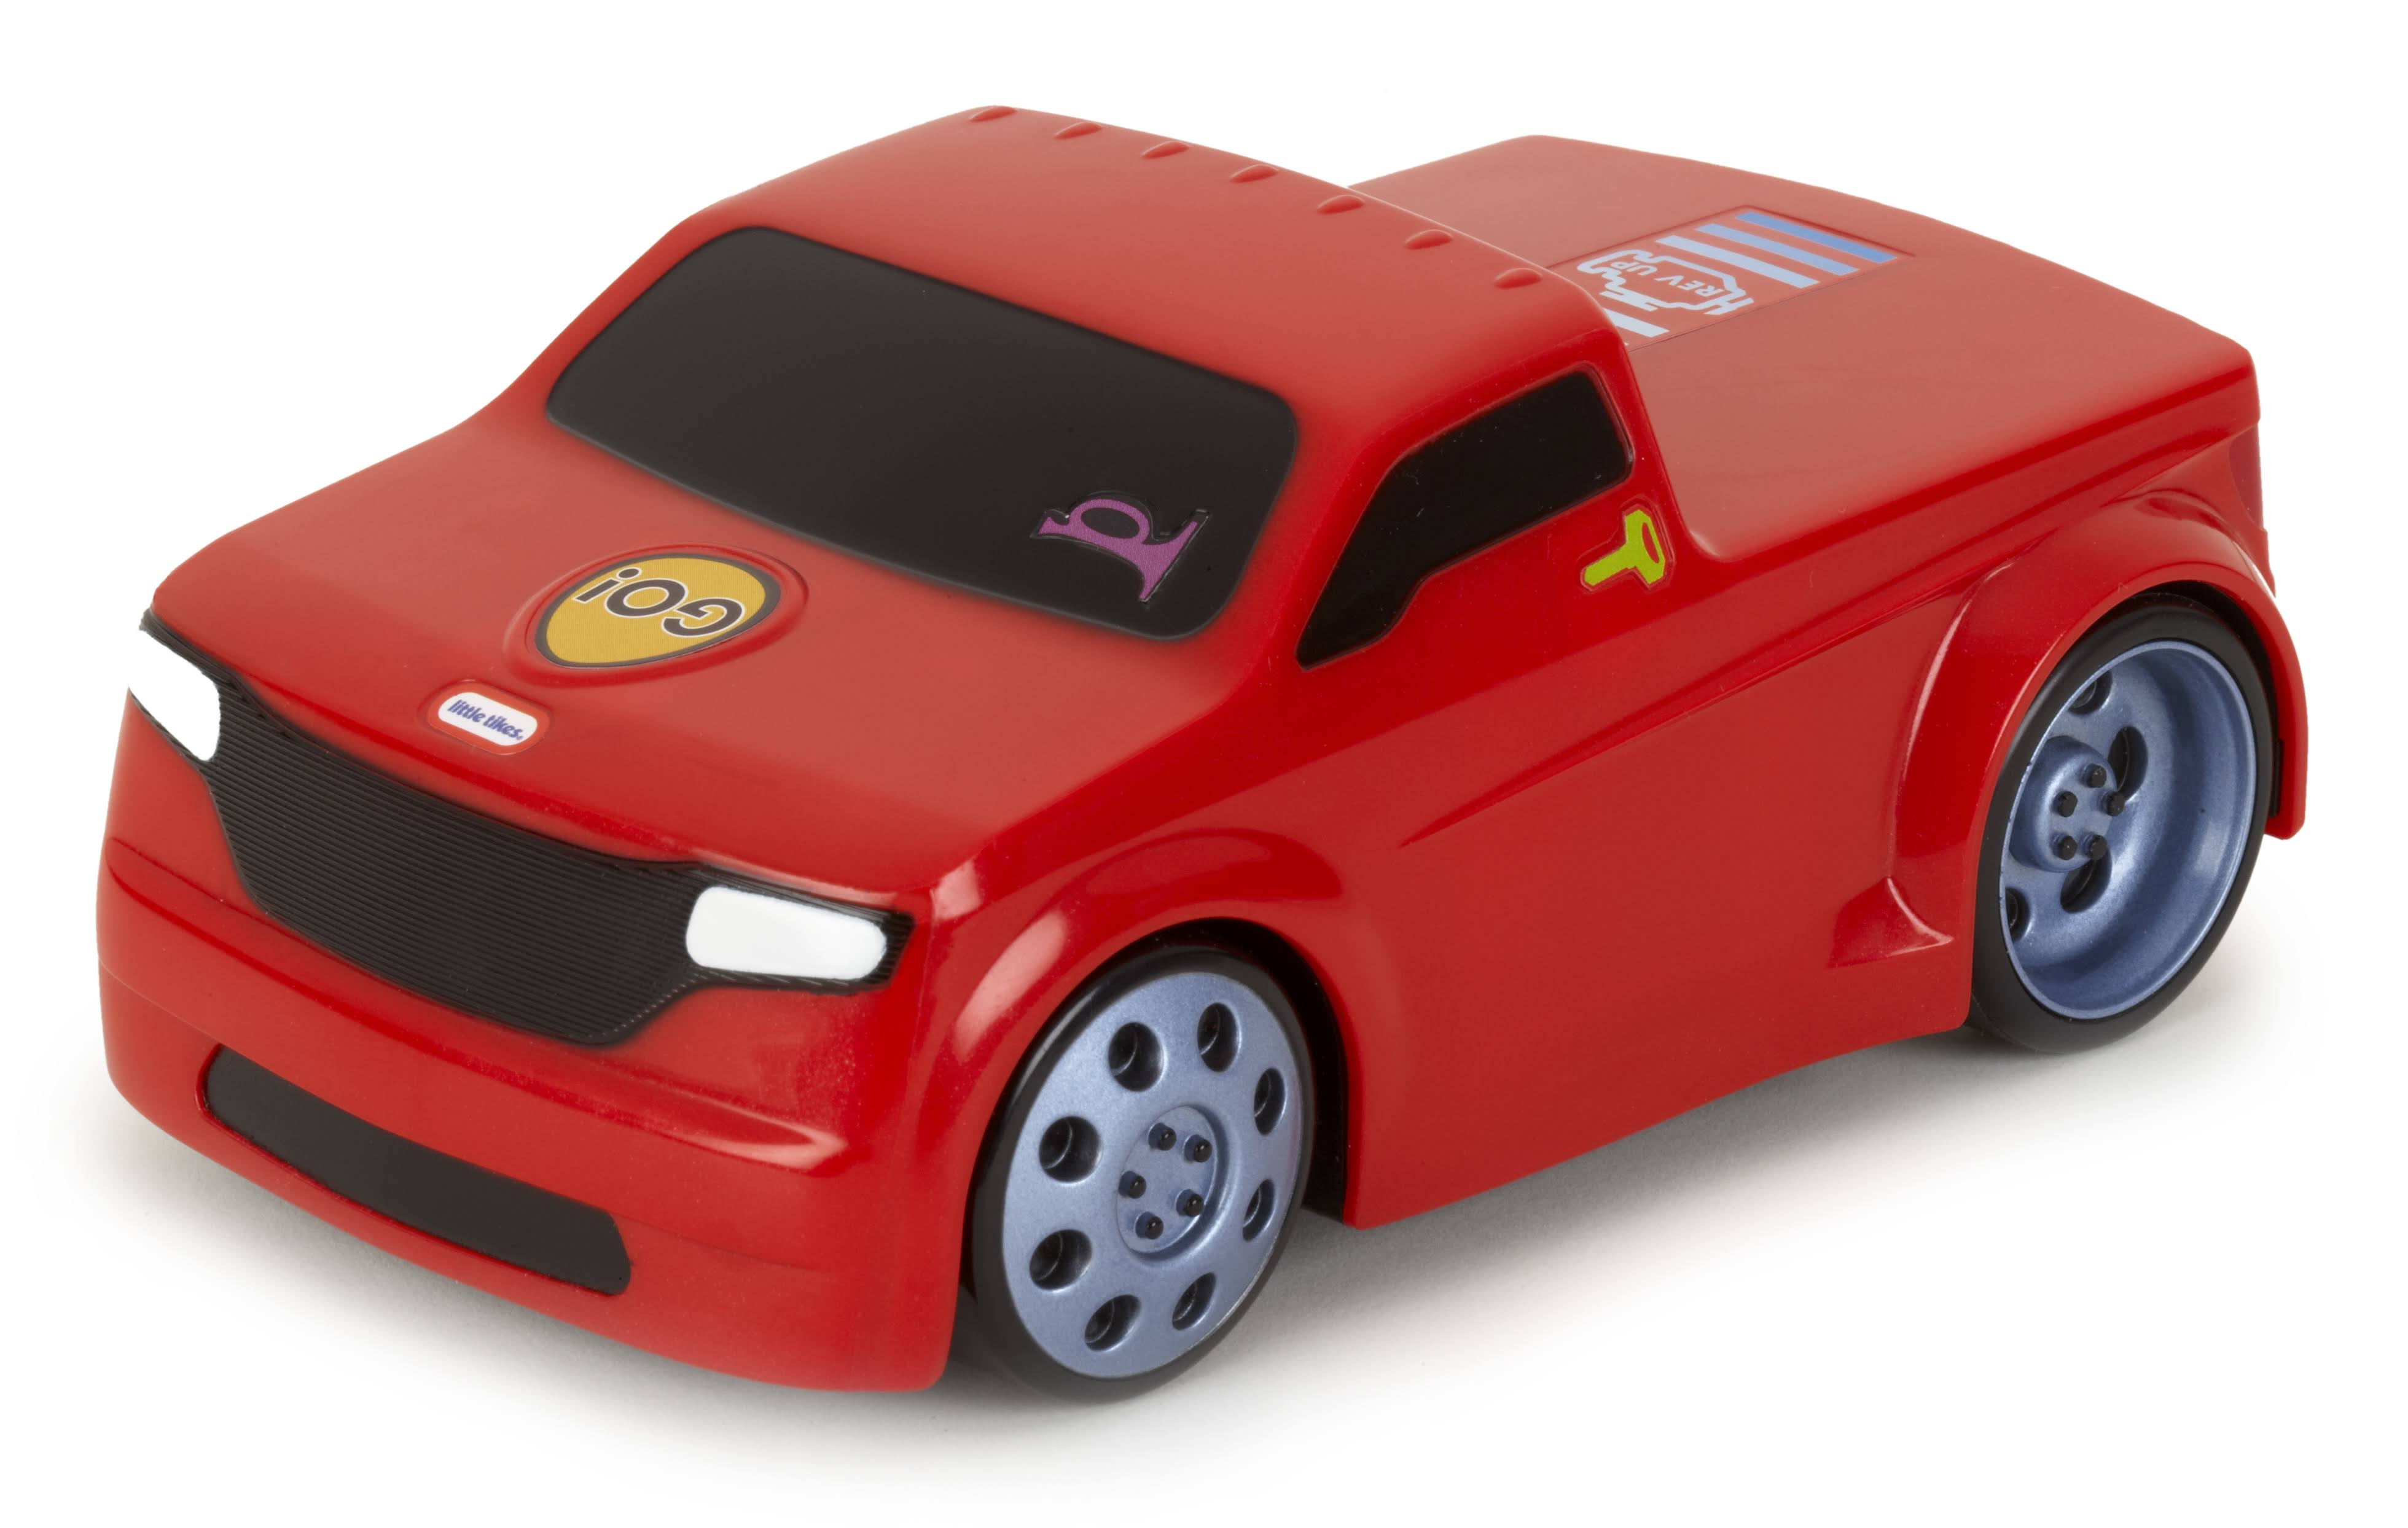 Little Tikes Touch 'n Go Racer Truck Toy - Red